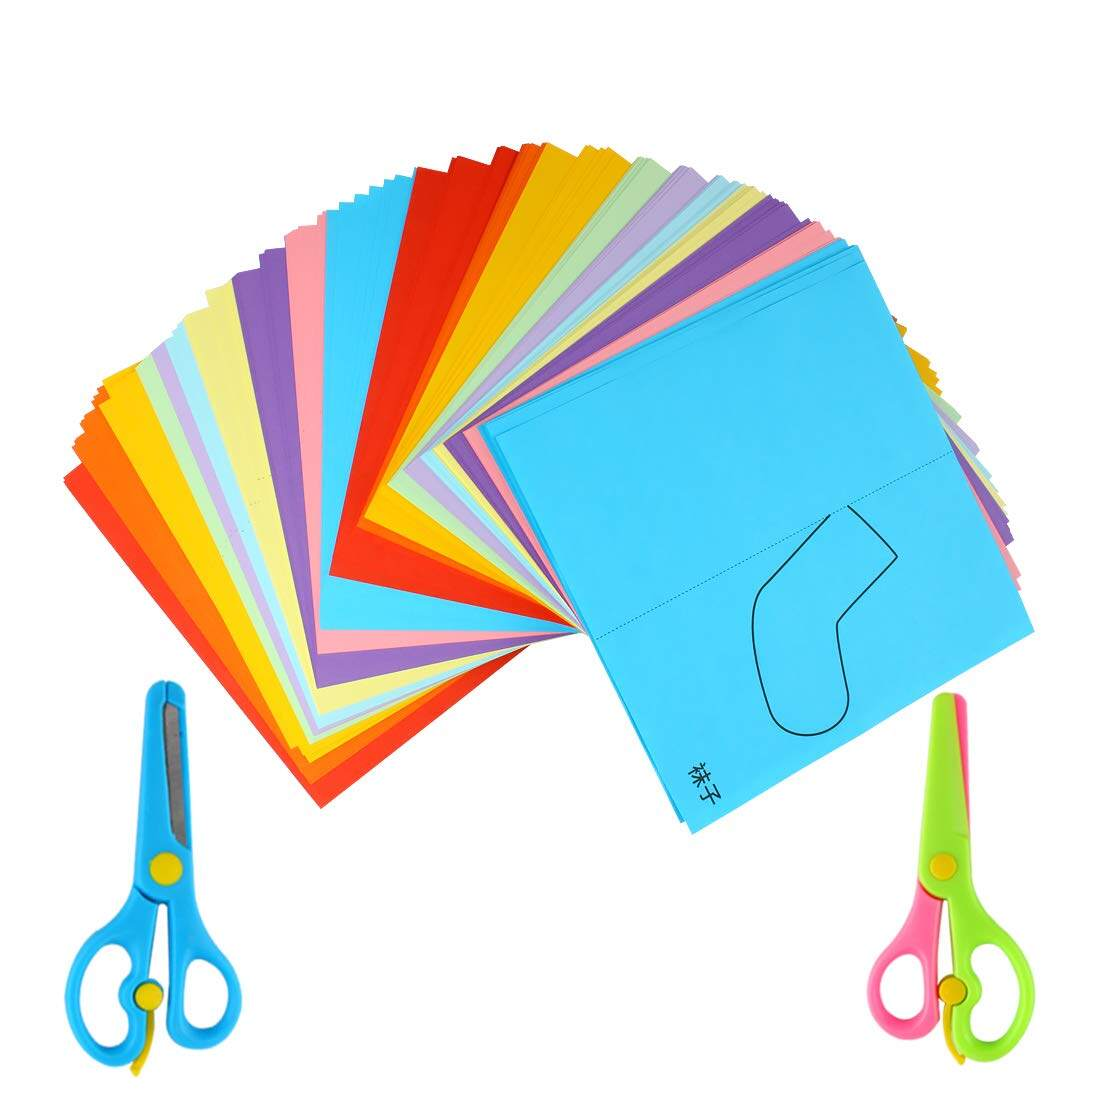 Handmade art stationery paper cutting safety scissors for kid (3Pcs_)